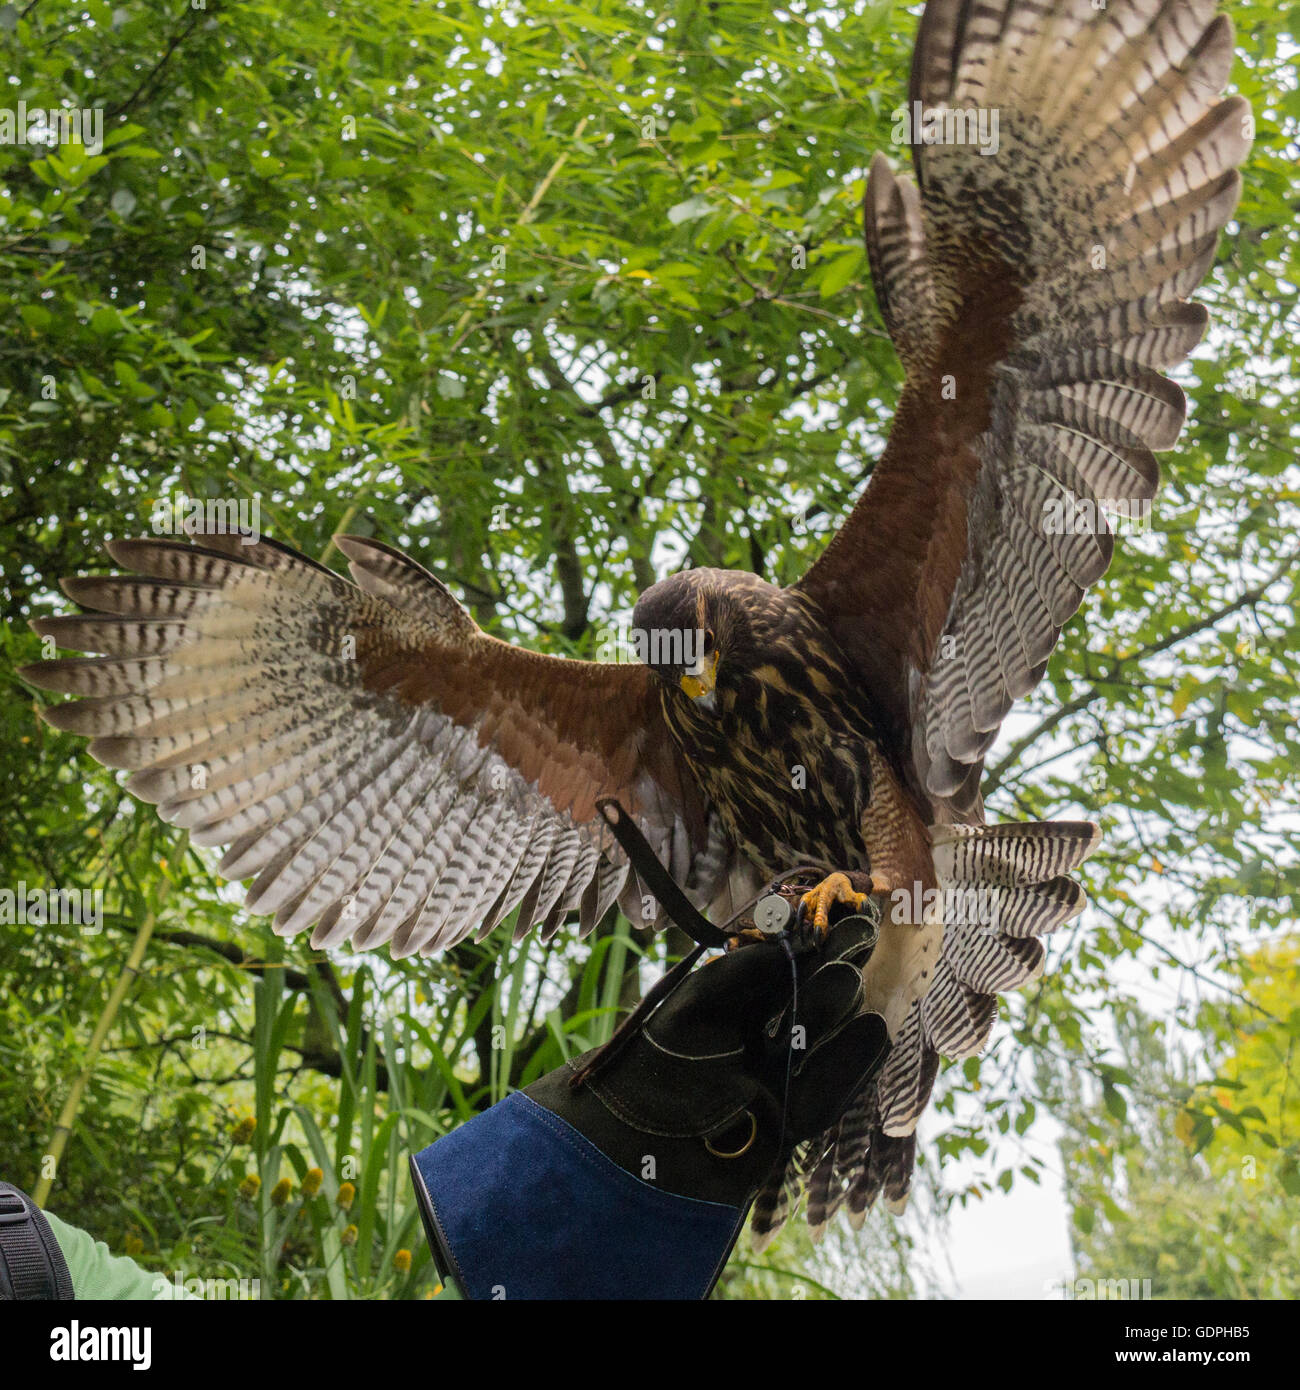 Hawk landing on a Falconry Gauntlet - Stock Image